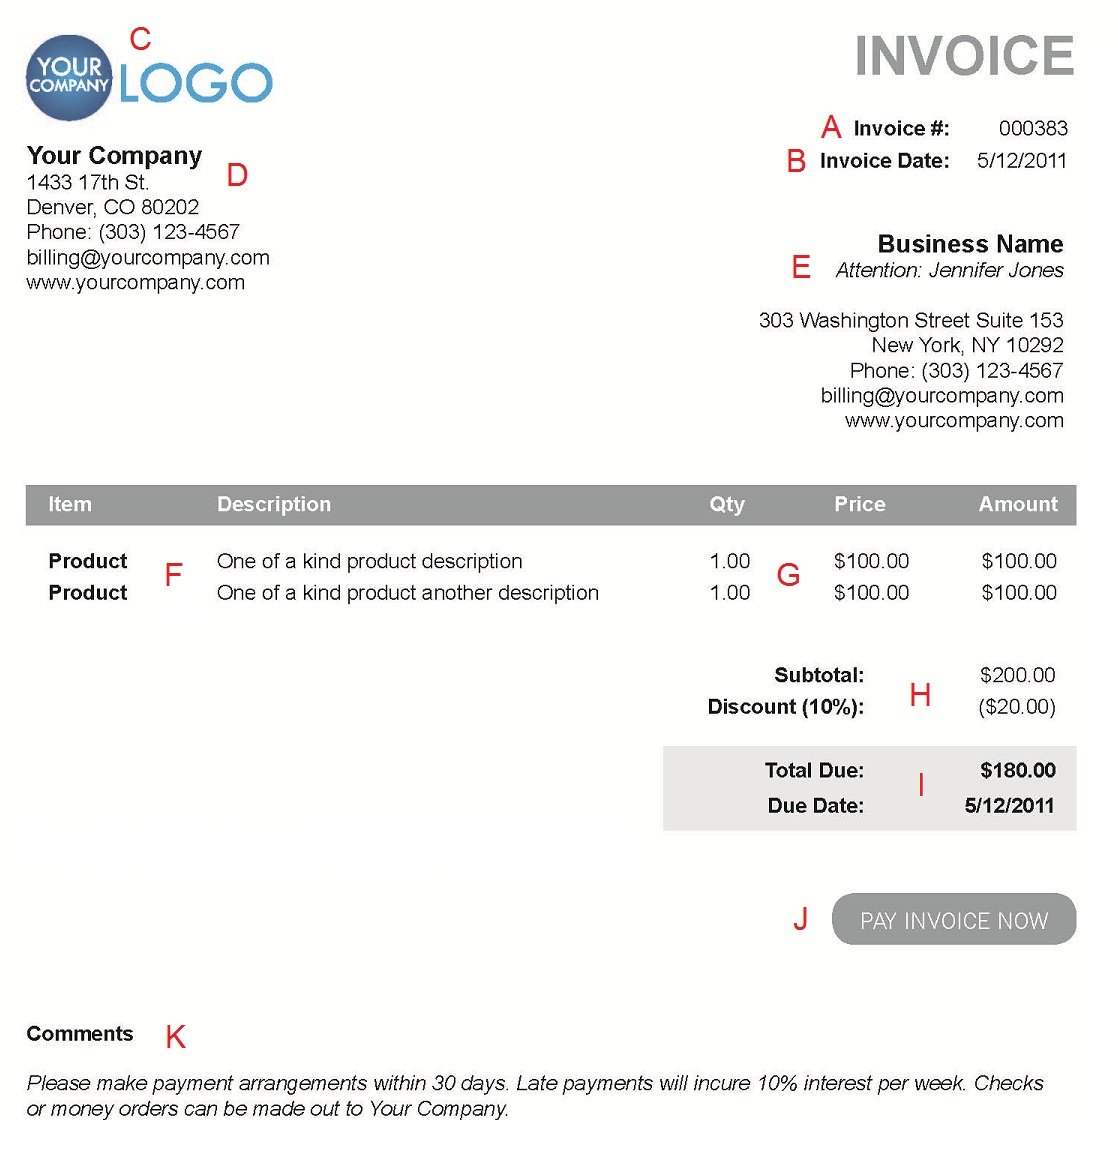 Coolmathgamesus  Marvelous The  Different Sections Of An Electronic Payment Invoice With Likable A  With Awesome Express Invoice Also Define Invoice In Addition How To Create An Invoice And Invoice Template Pdf As Well As Invoice Creator Additionally Invoices Templates From Paysimplecom With Coolmathgamesus  Likable The  Different Sections Of An Electronic Payment Invoice With Awesome A  And Marvelous Express Invoice Also Define Invoice In Addition How To Create An Invoice From Paysimplecom